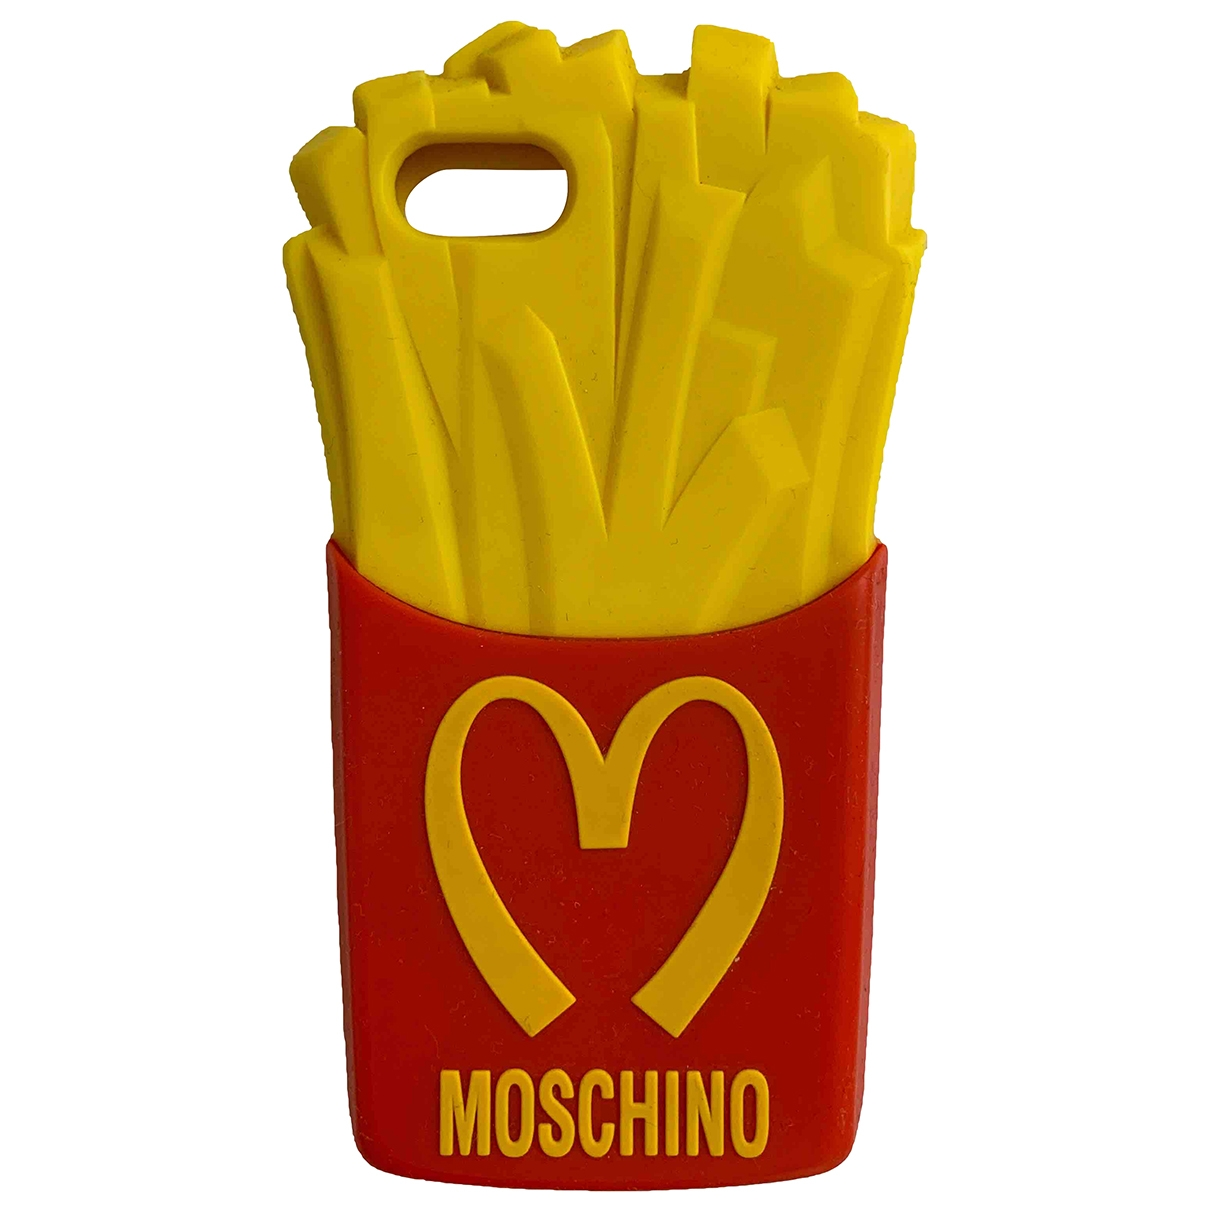 Moschino - Accessoires   pour lifestyle - rouge